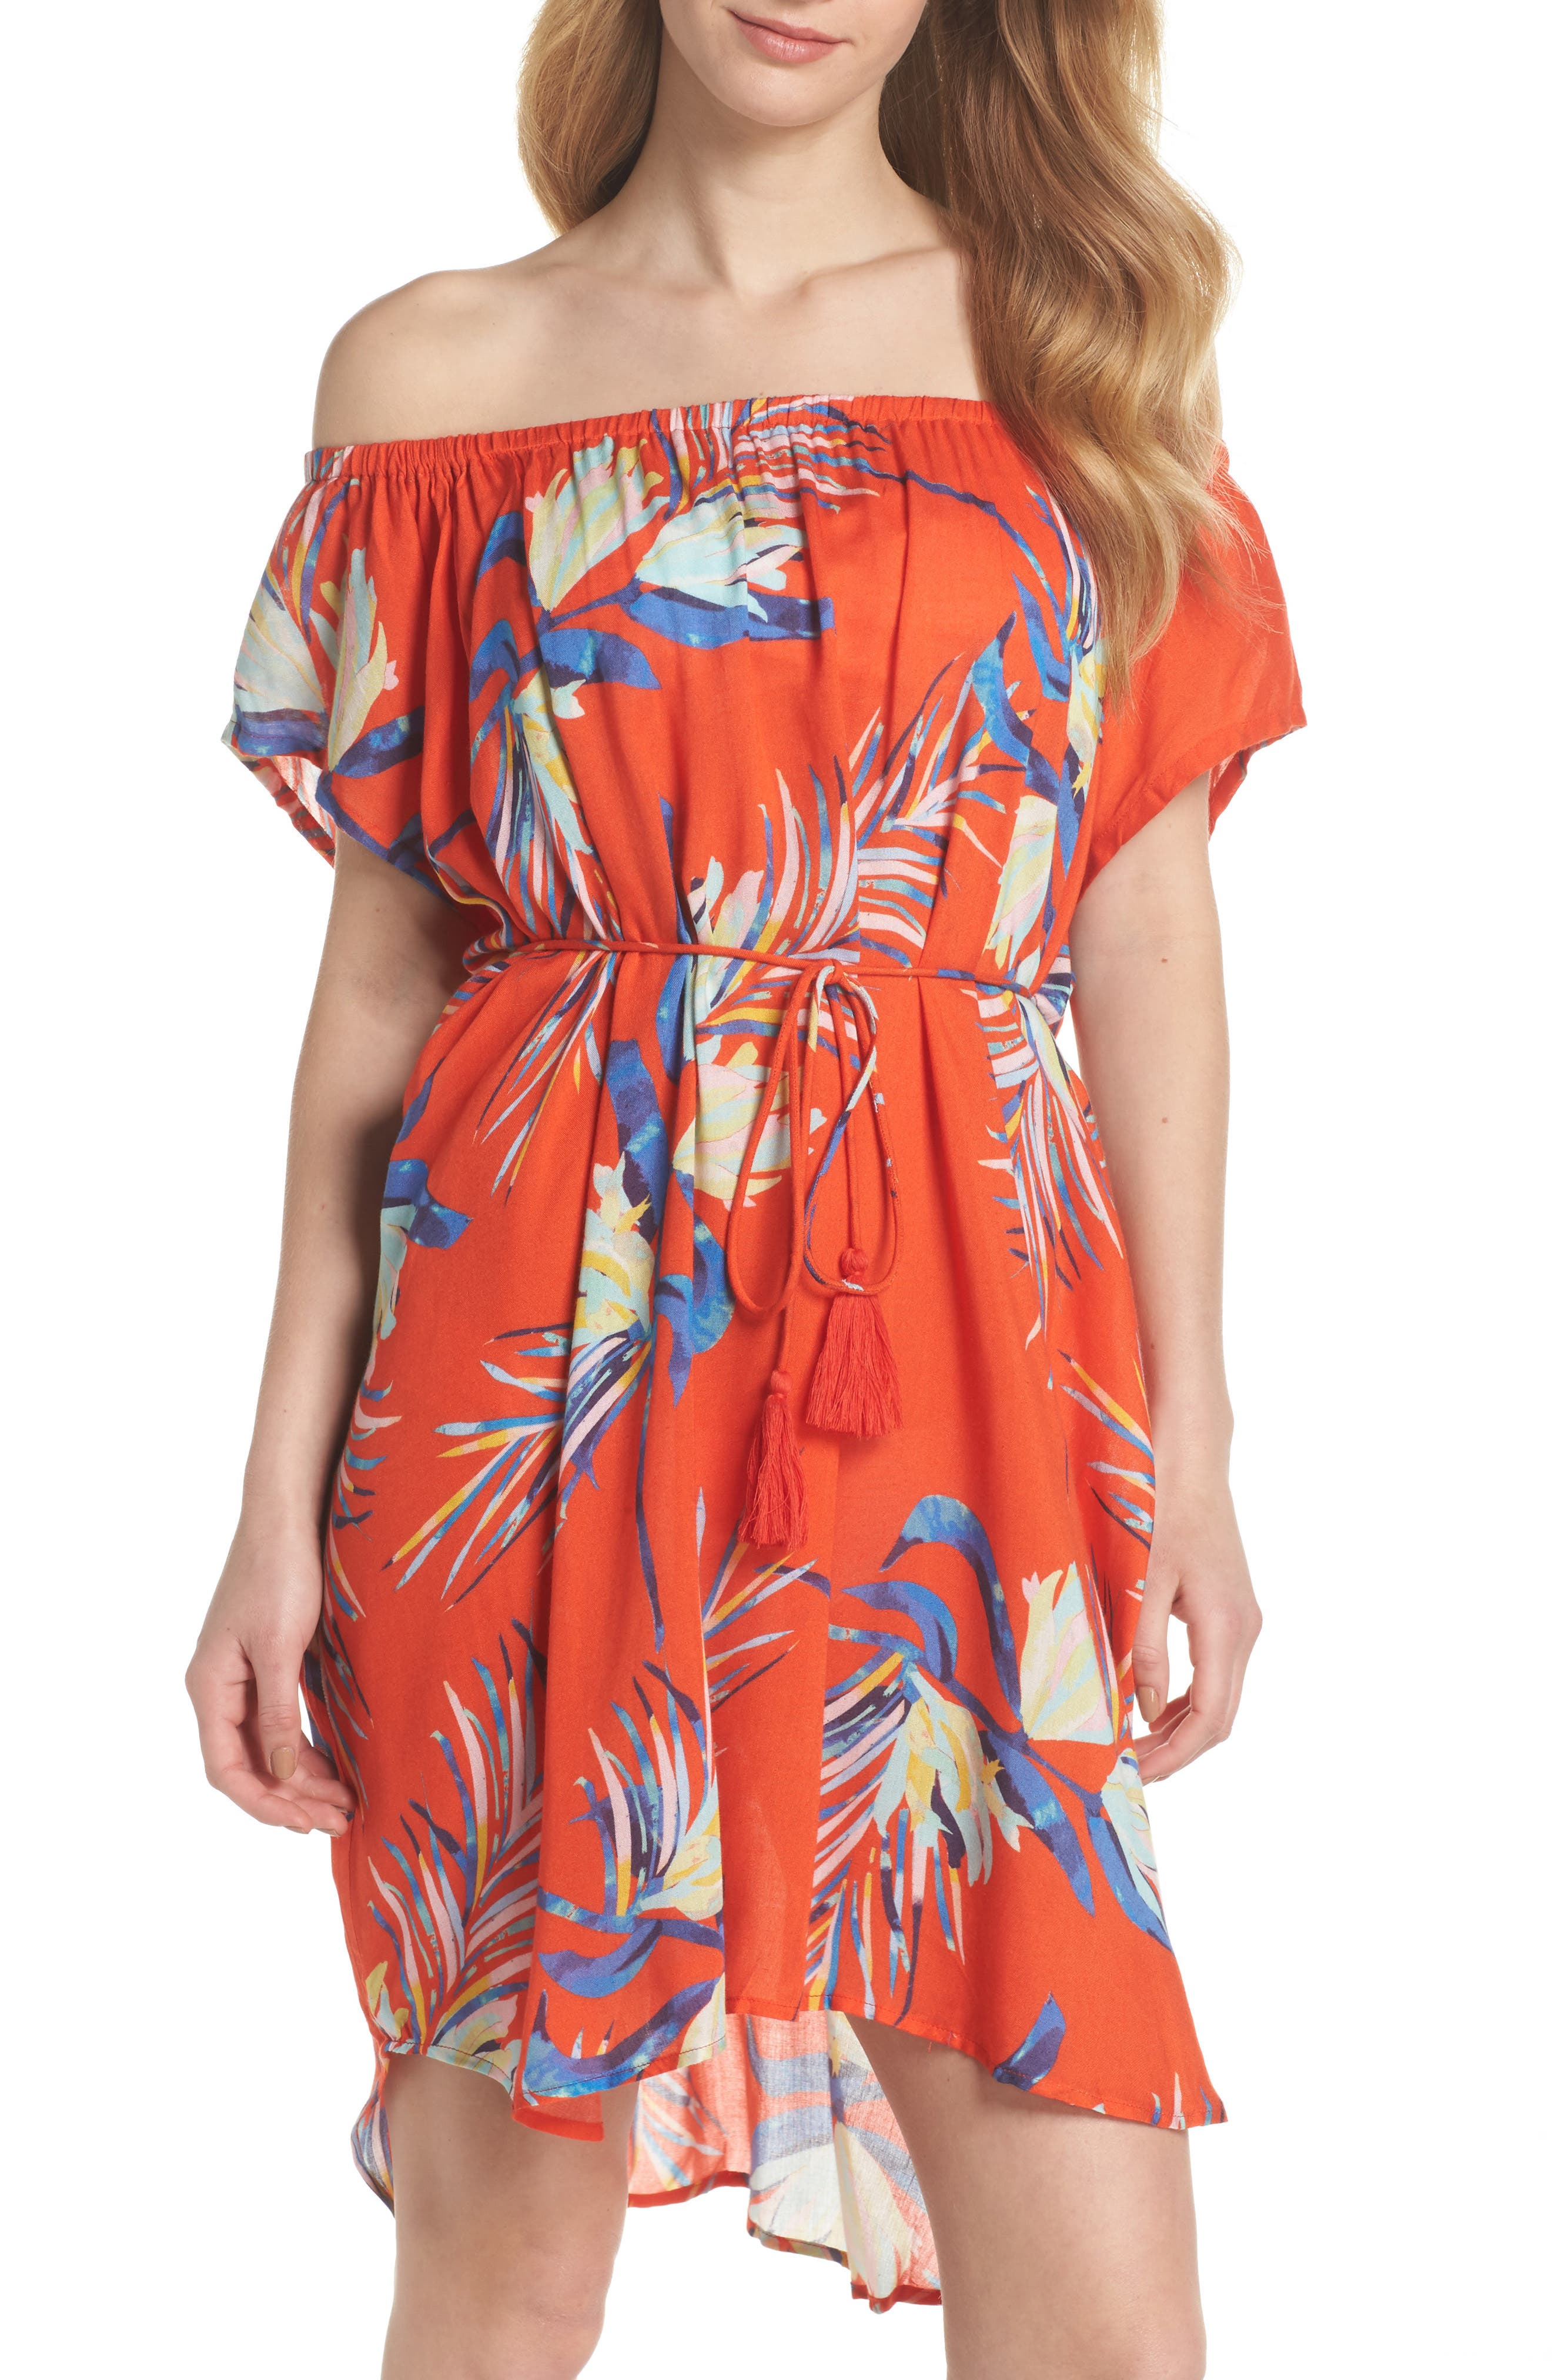 Paradise Palm Off the Shoulder Cover-Up Dress,                         Main,                         color, Tangerine